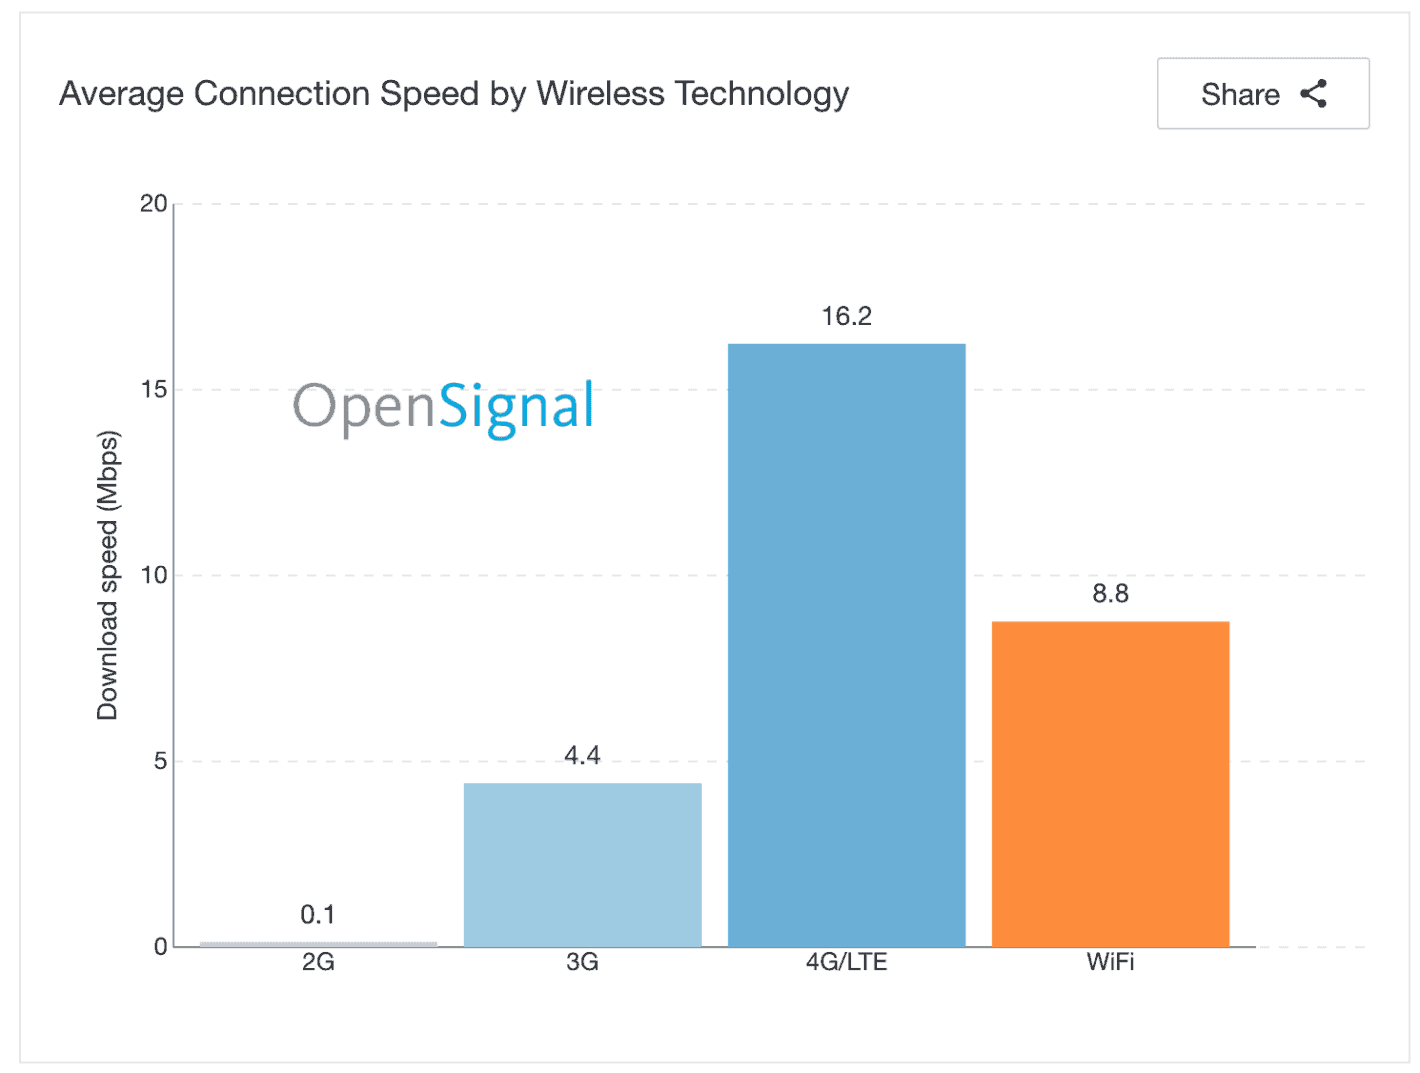 Australia 4G speeds average 33Mbps for 10th globally: OpenSignal